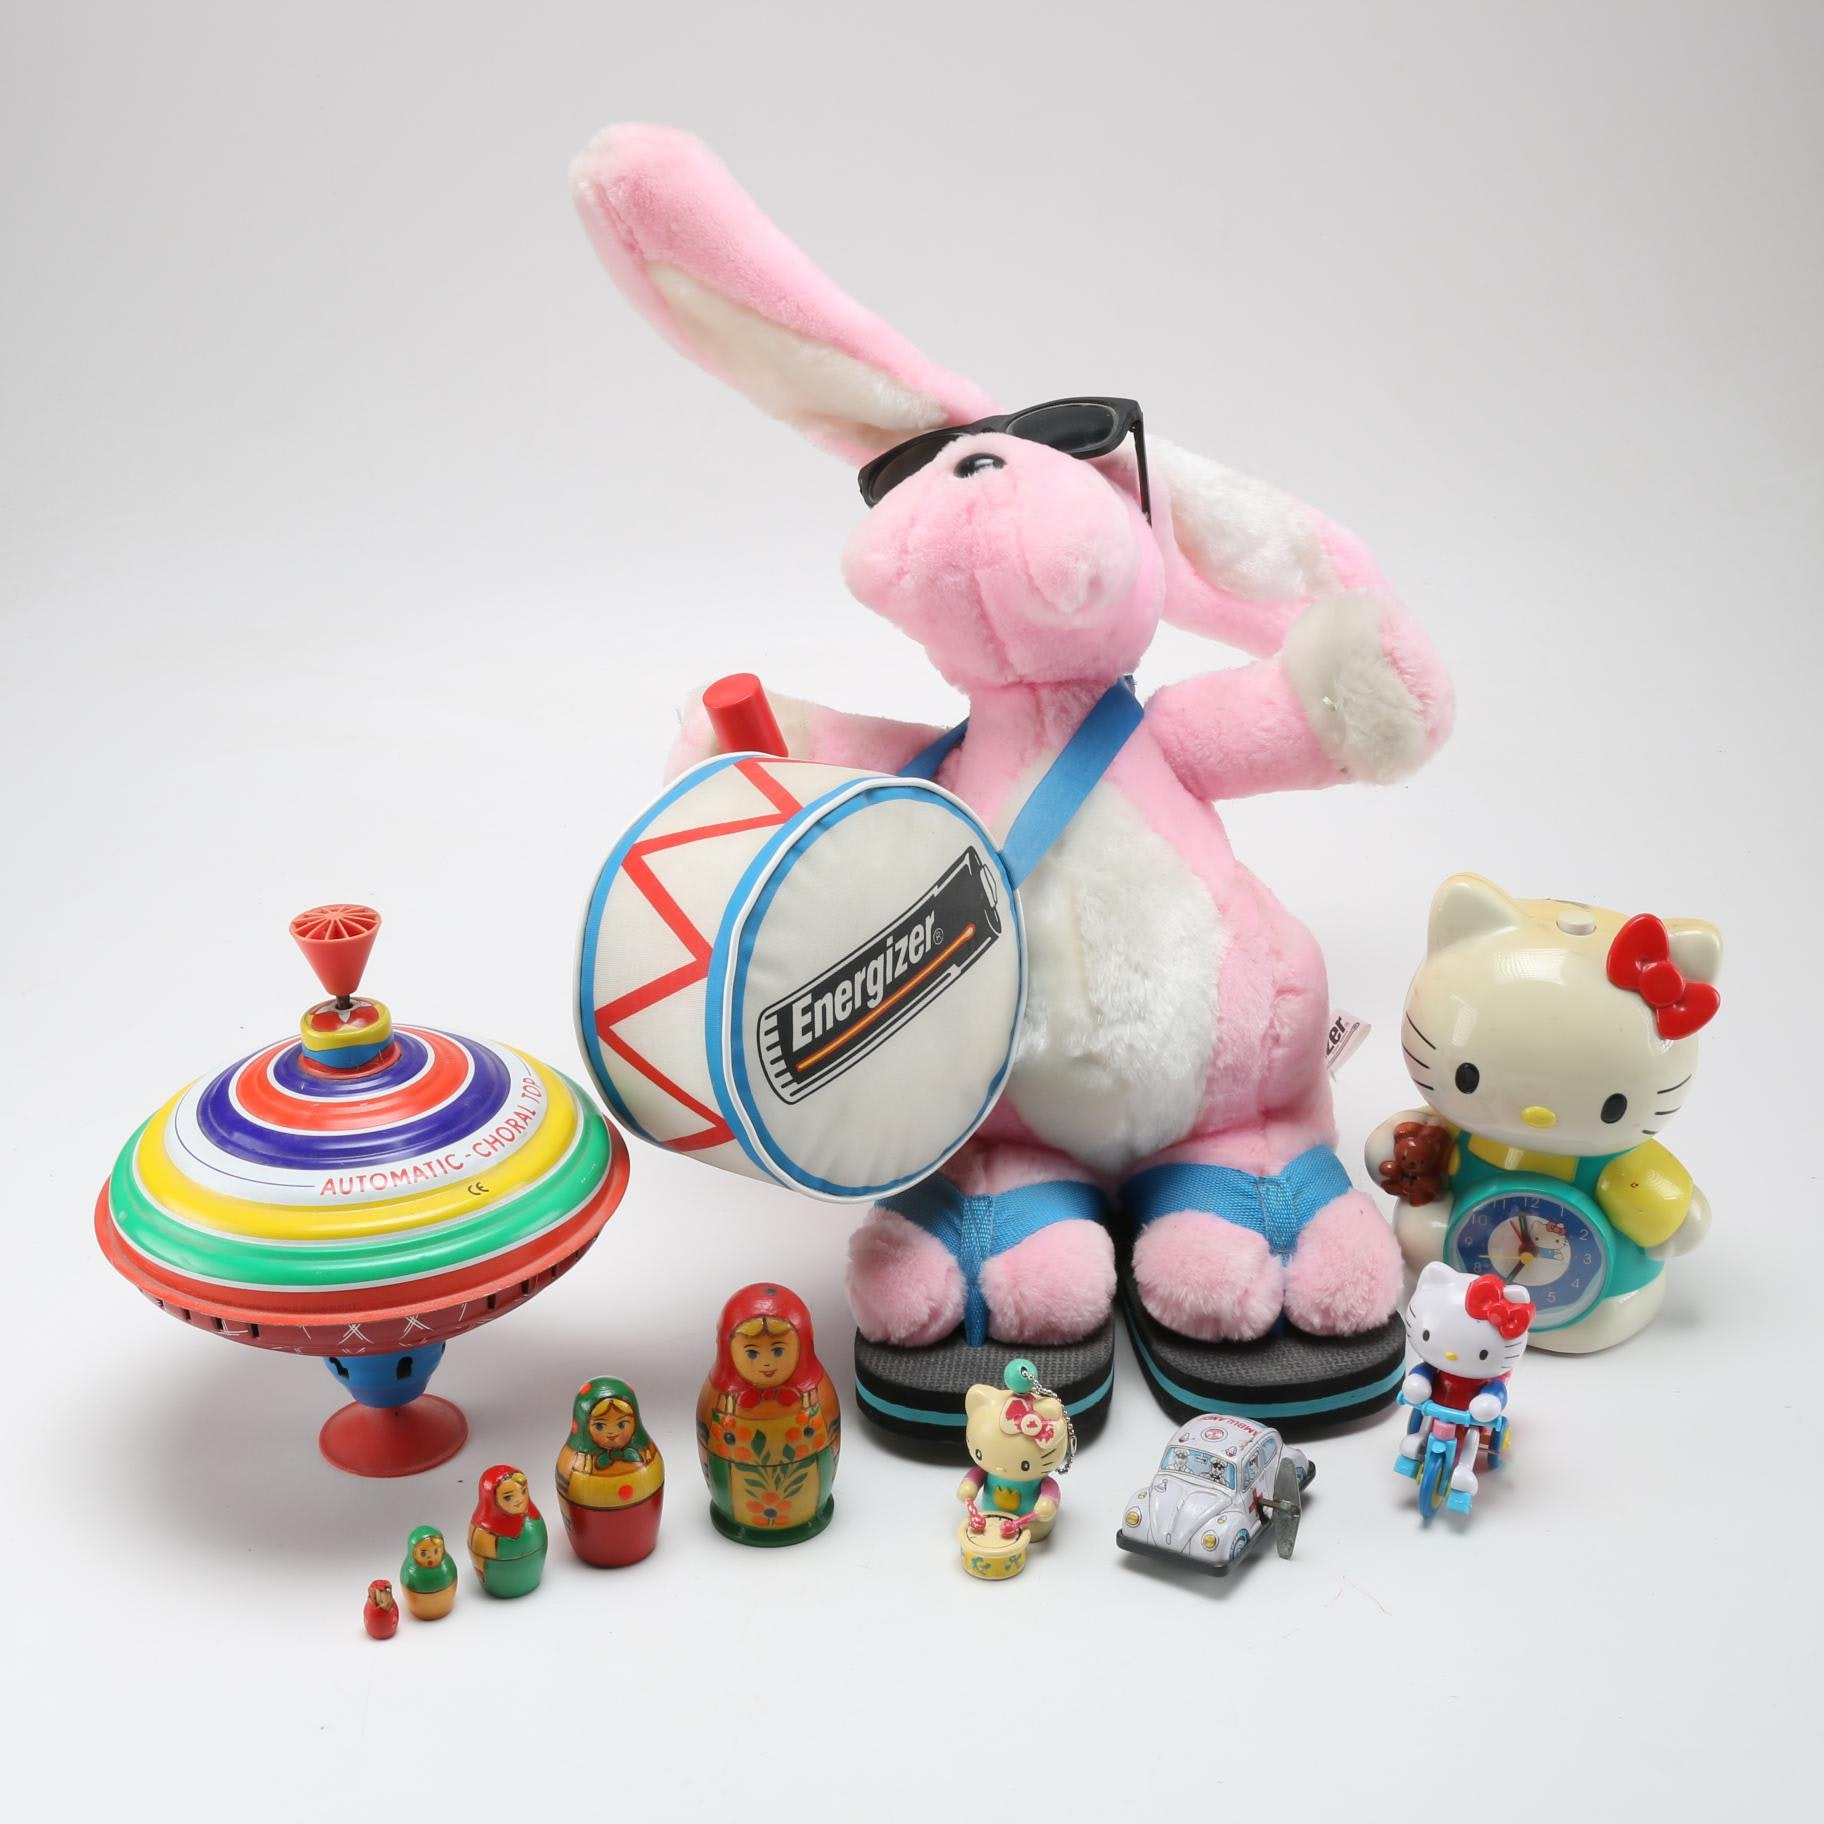 Toys Including Hello Kitty and Vintage Tin Toys